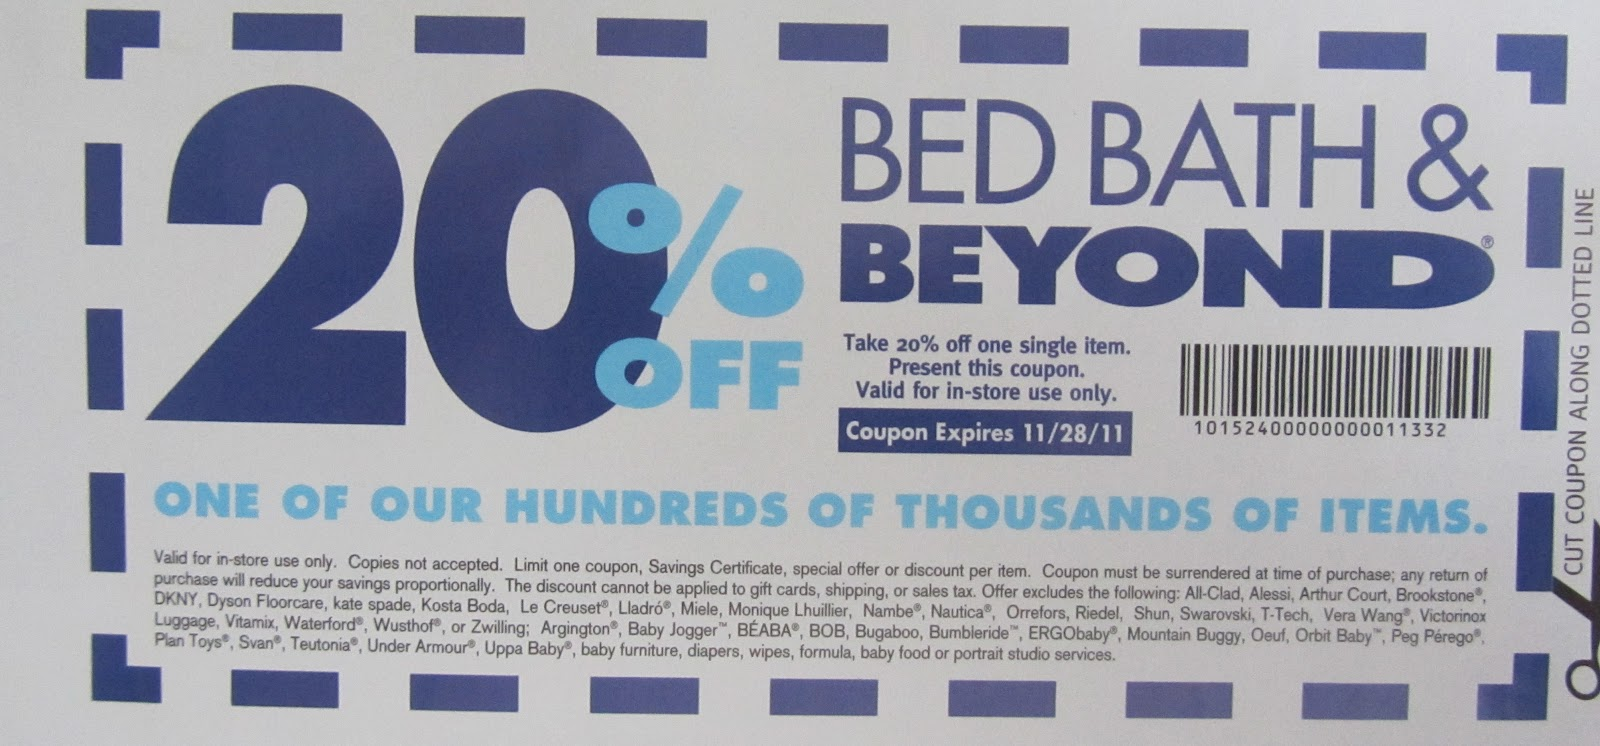 Does Bed Bath And Beyond Take Expired Coupons